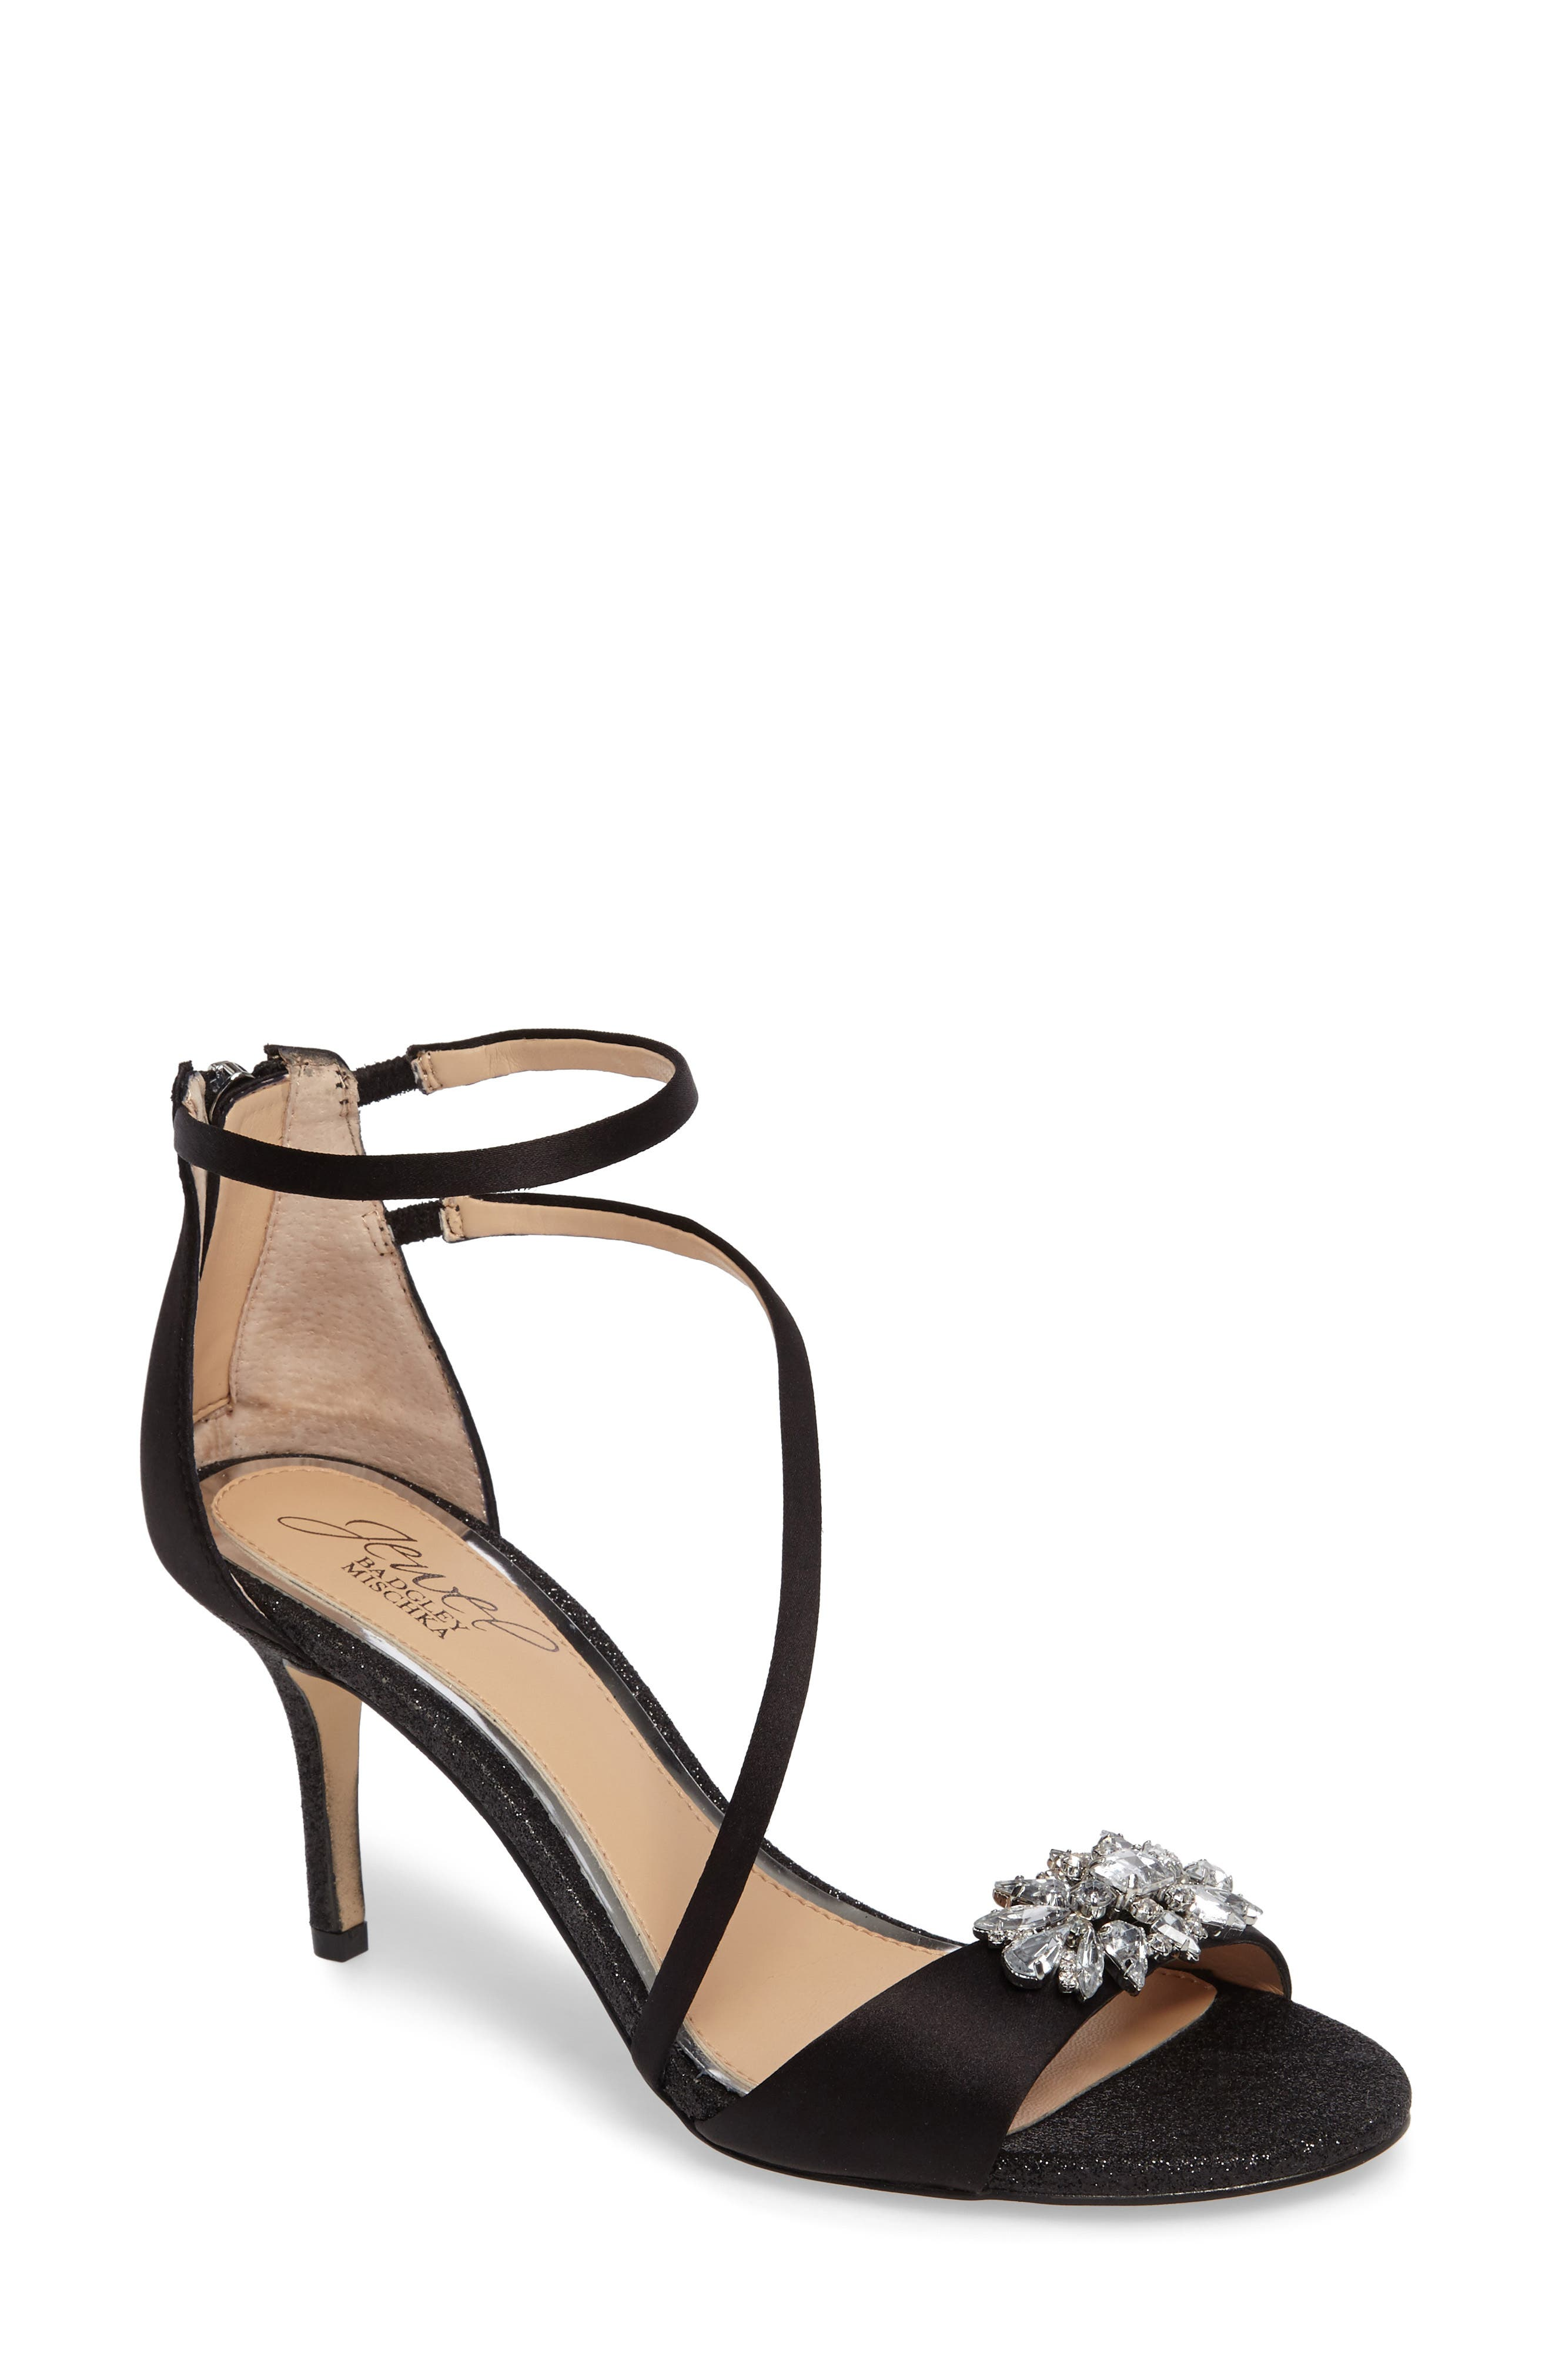 Leighton Embellished Strappy Sandal,                             Main thumbnail 1, color,                             015